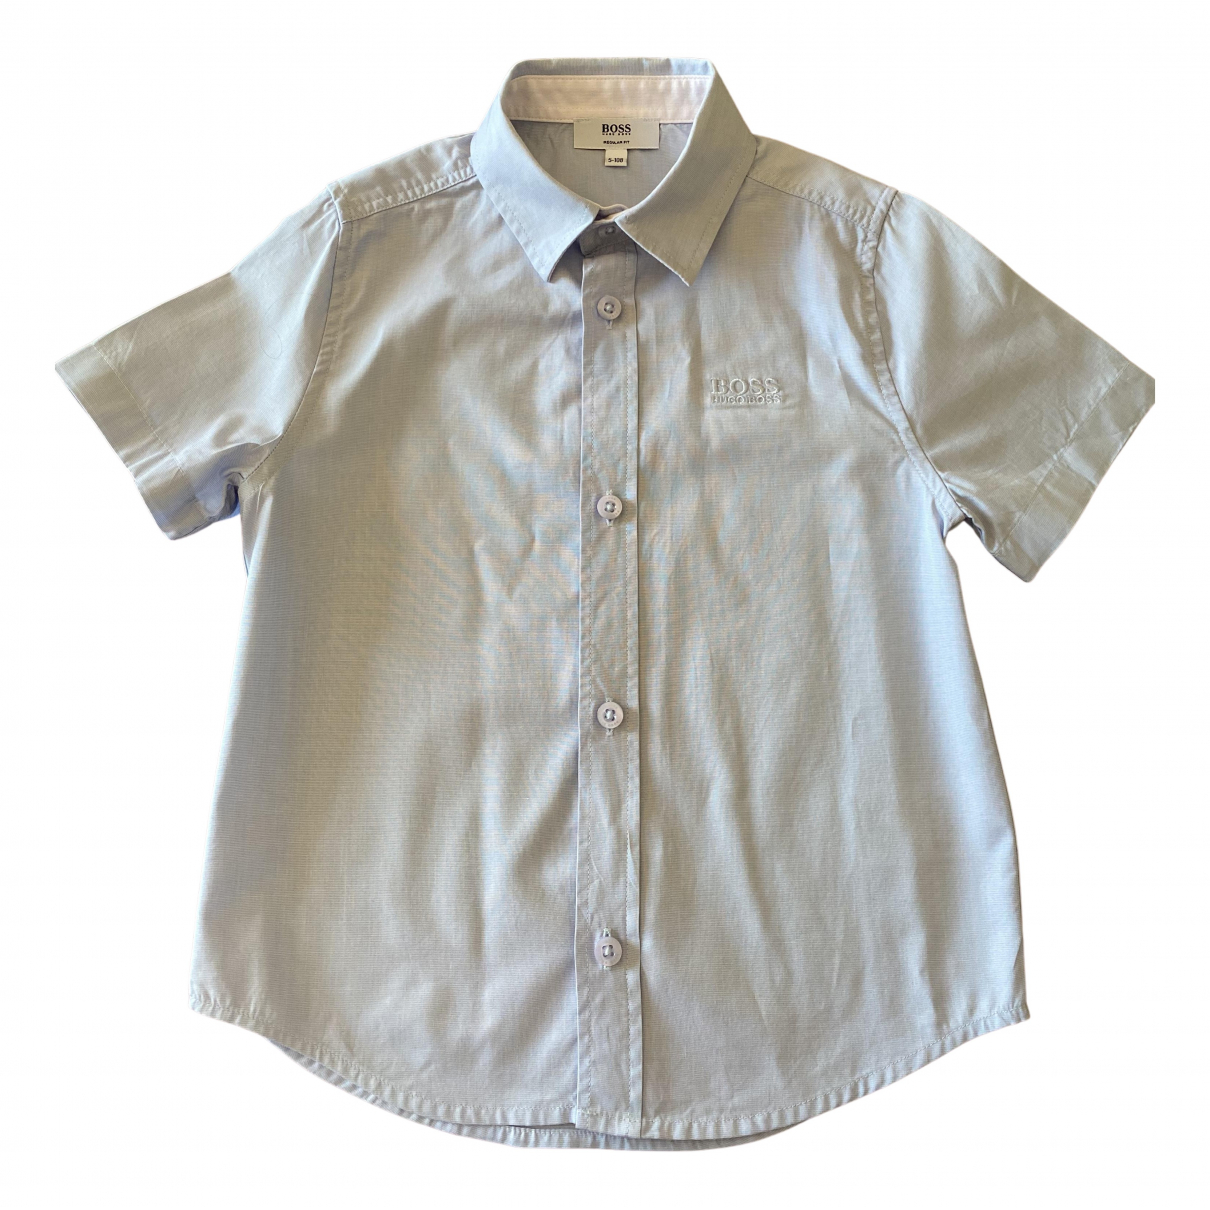 Boss N Cotton  top for Kids 5 years - up to 108cm FR